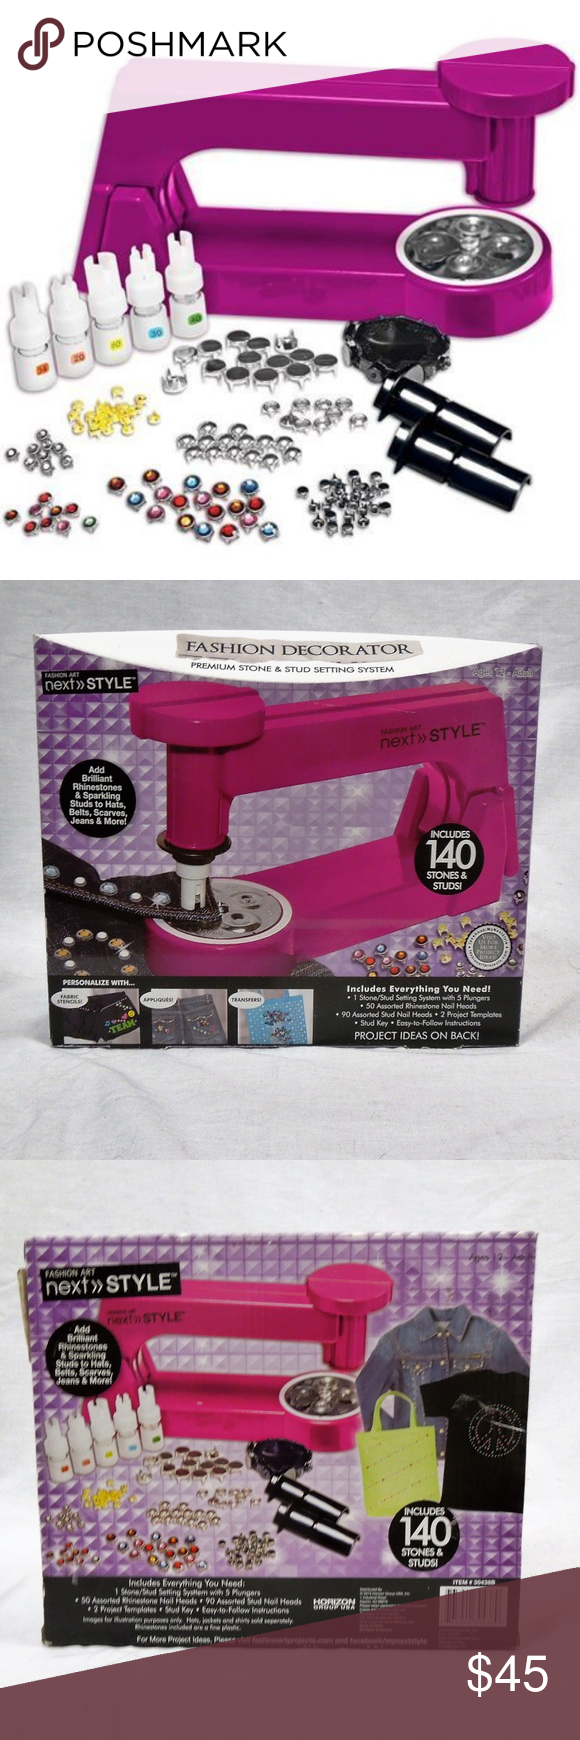 New Fashion Decorator Kit Fashion Decorator Kit By Fashion Art Next